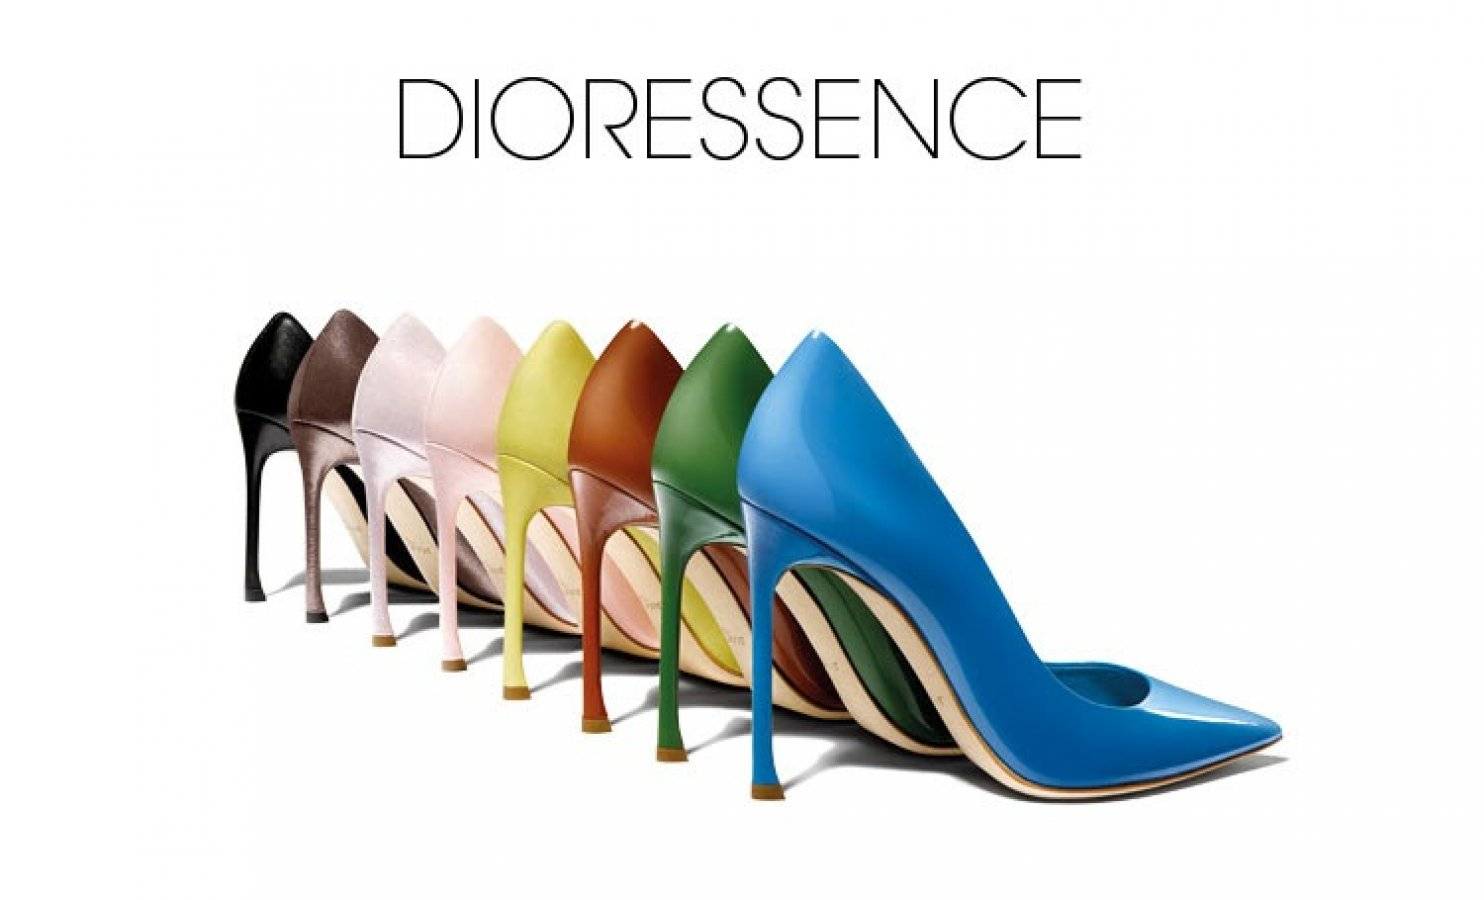 New Dioressence pumps